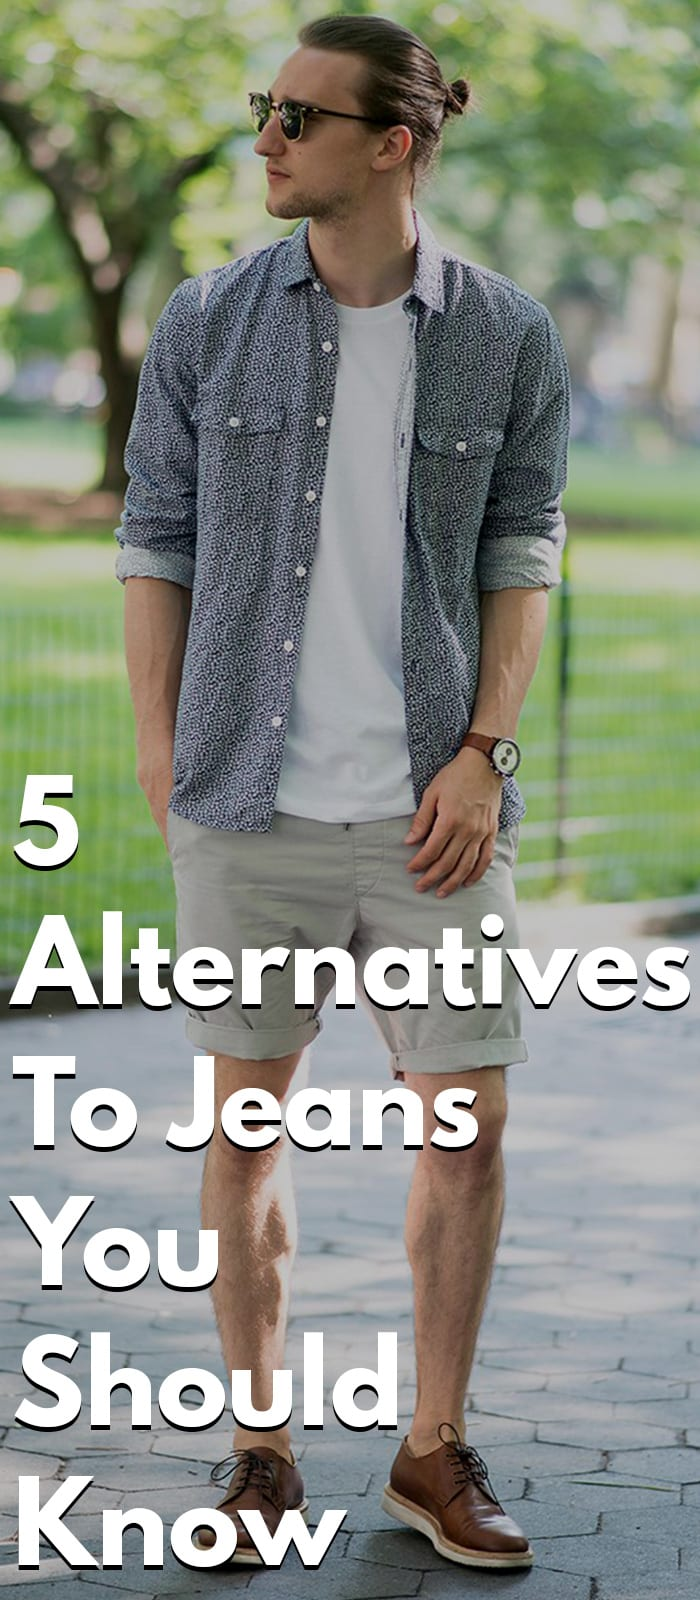 5 Alternatives To Jeans - Chino, Trouser, Joggers